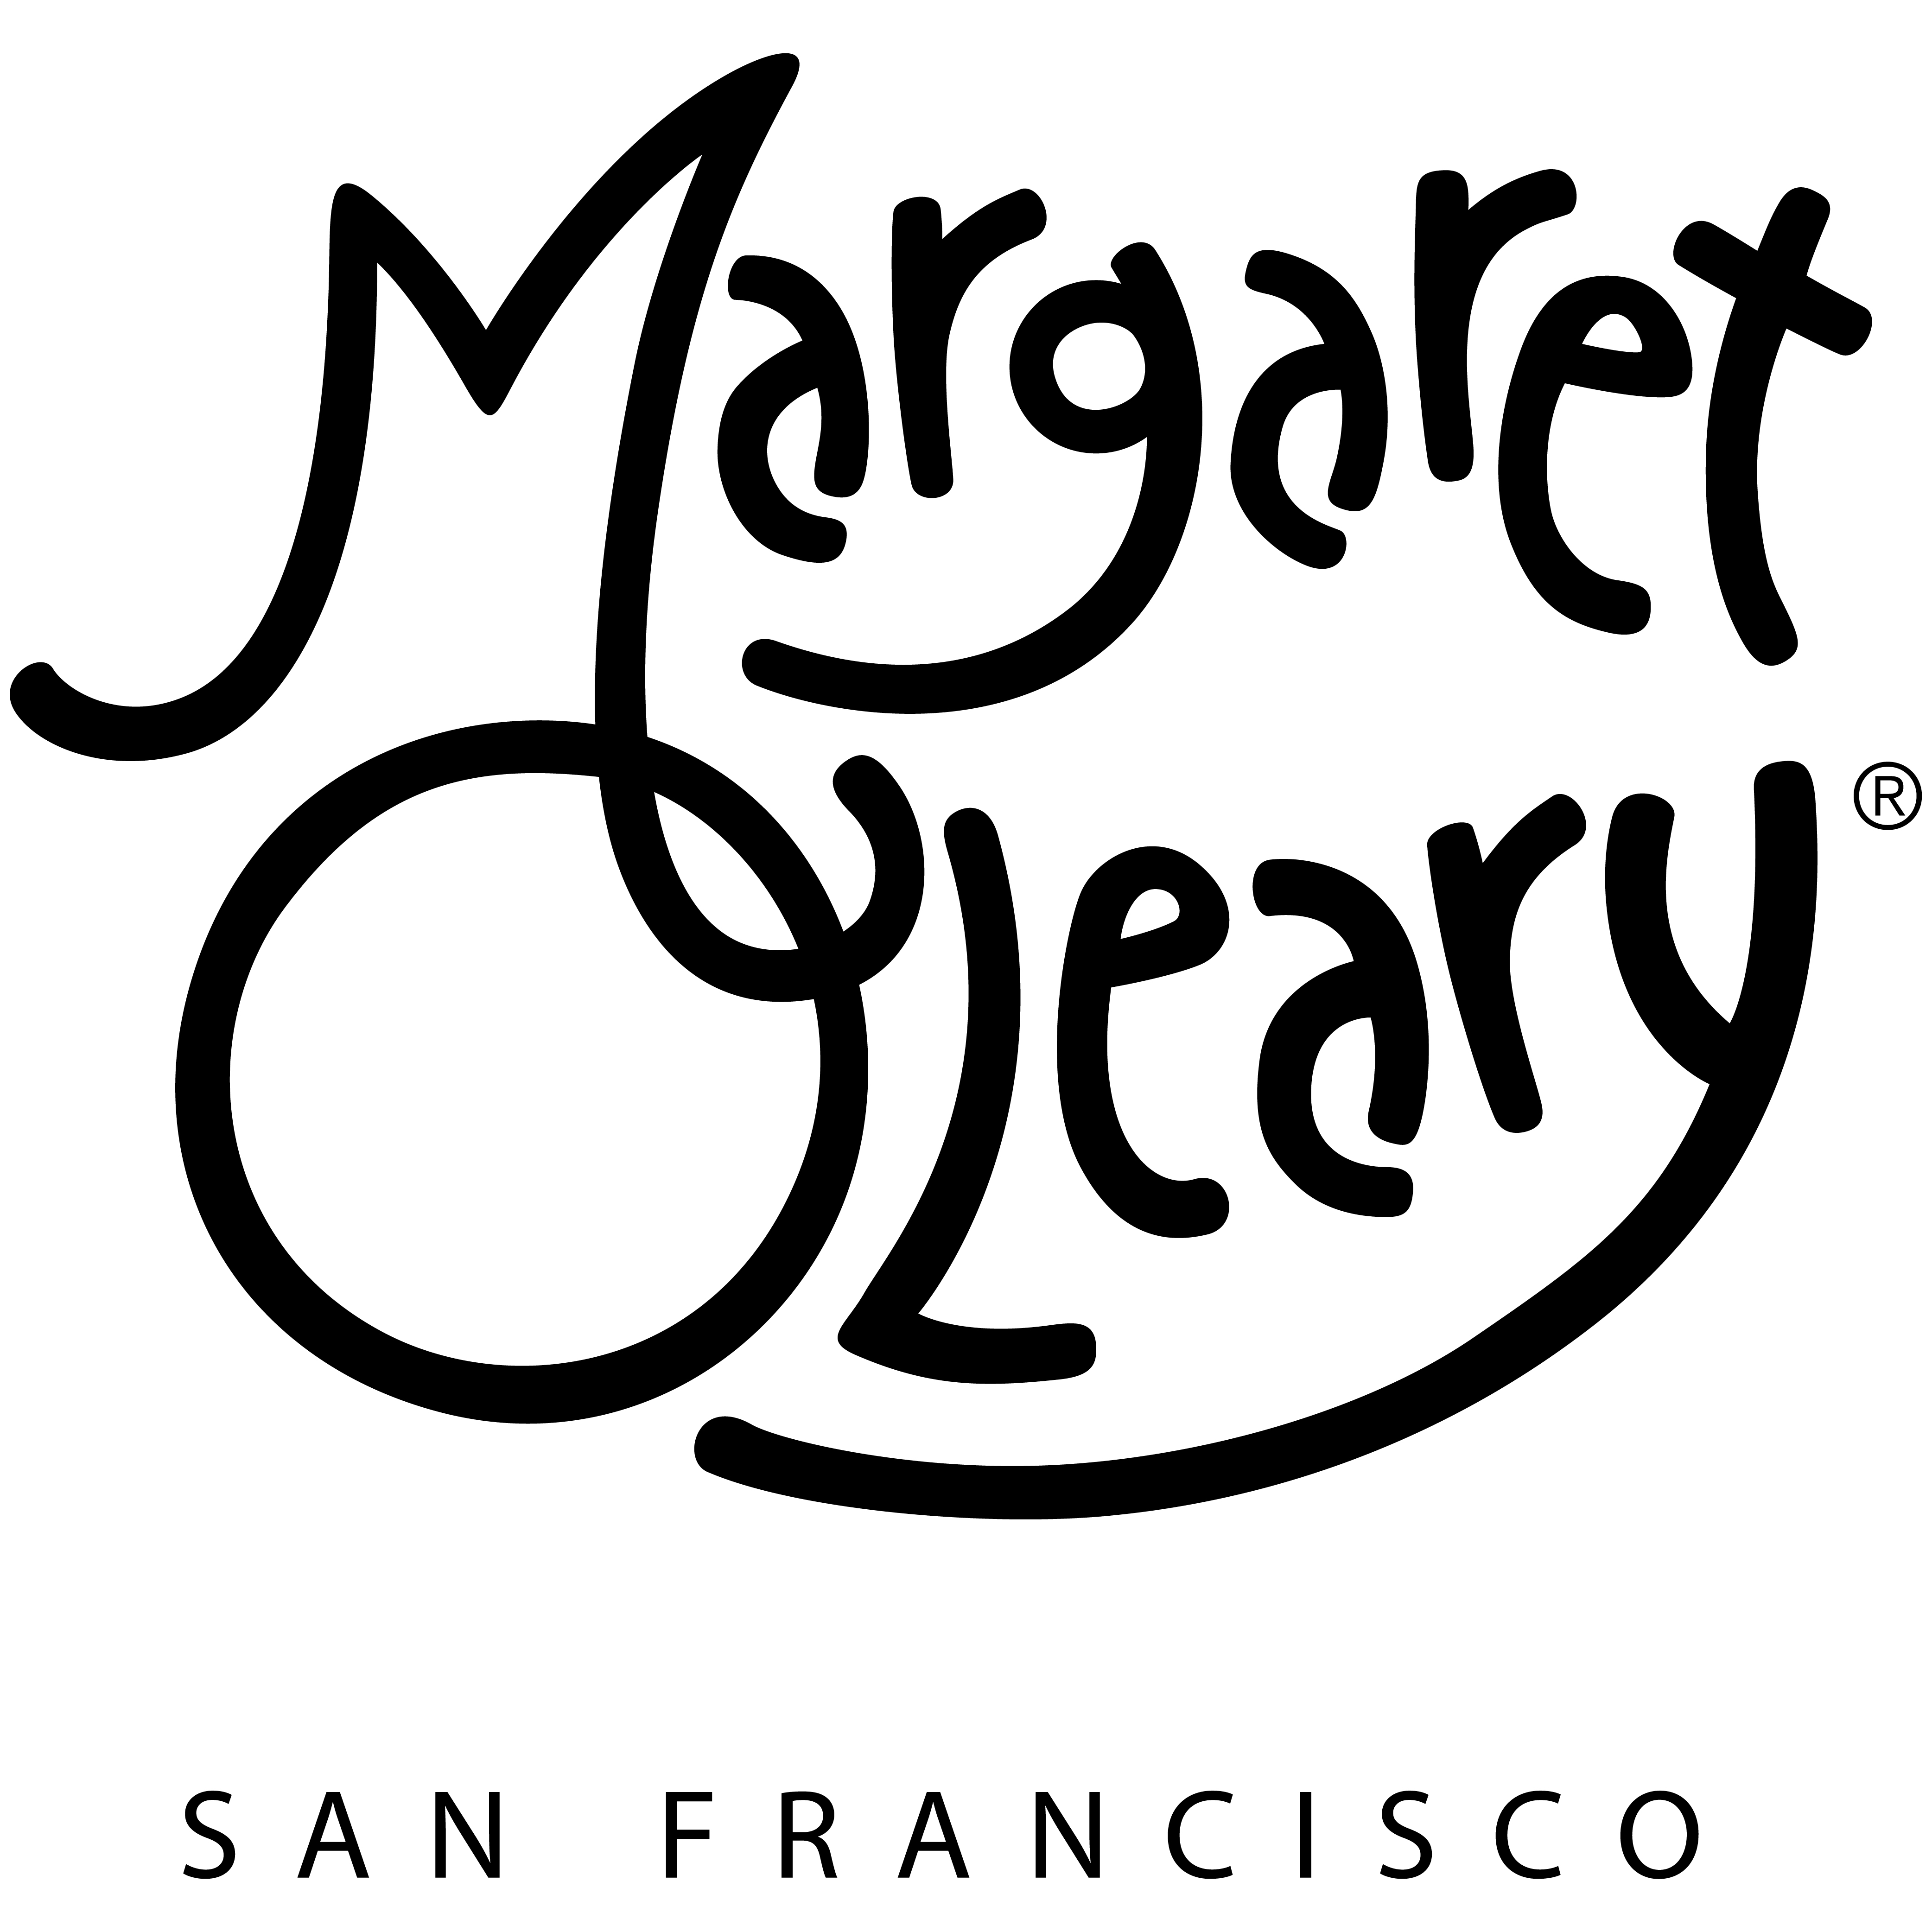 Margaret O'Leary